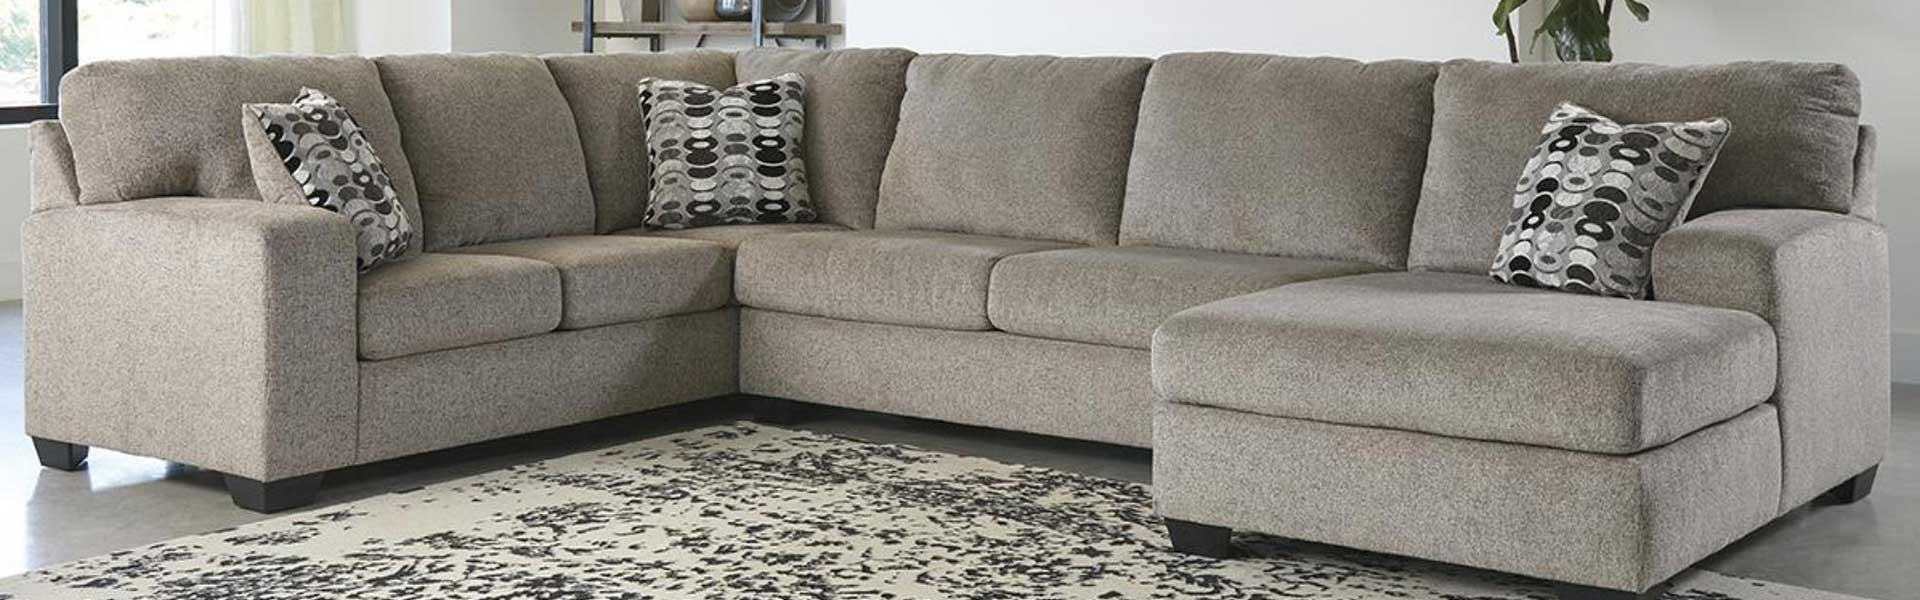 Living Room Furniture In La Grande Or Sectional Couches